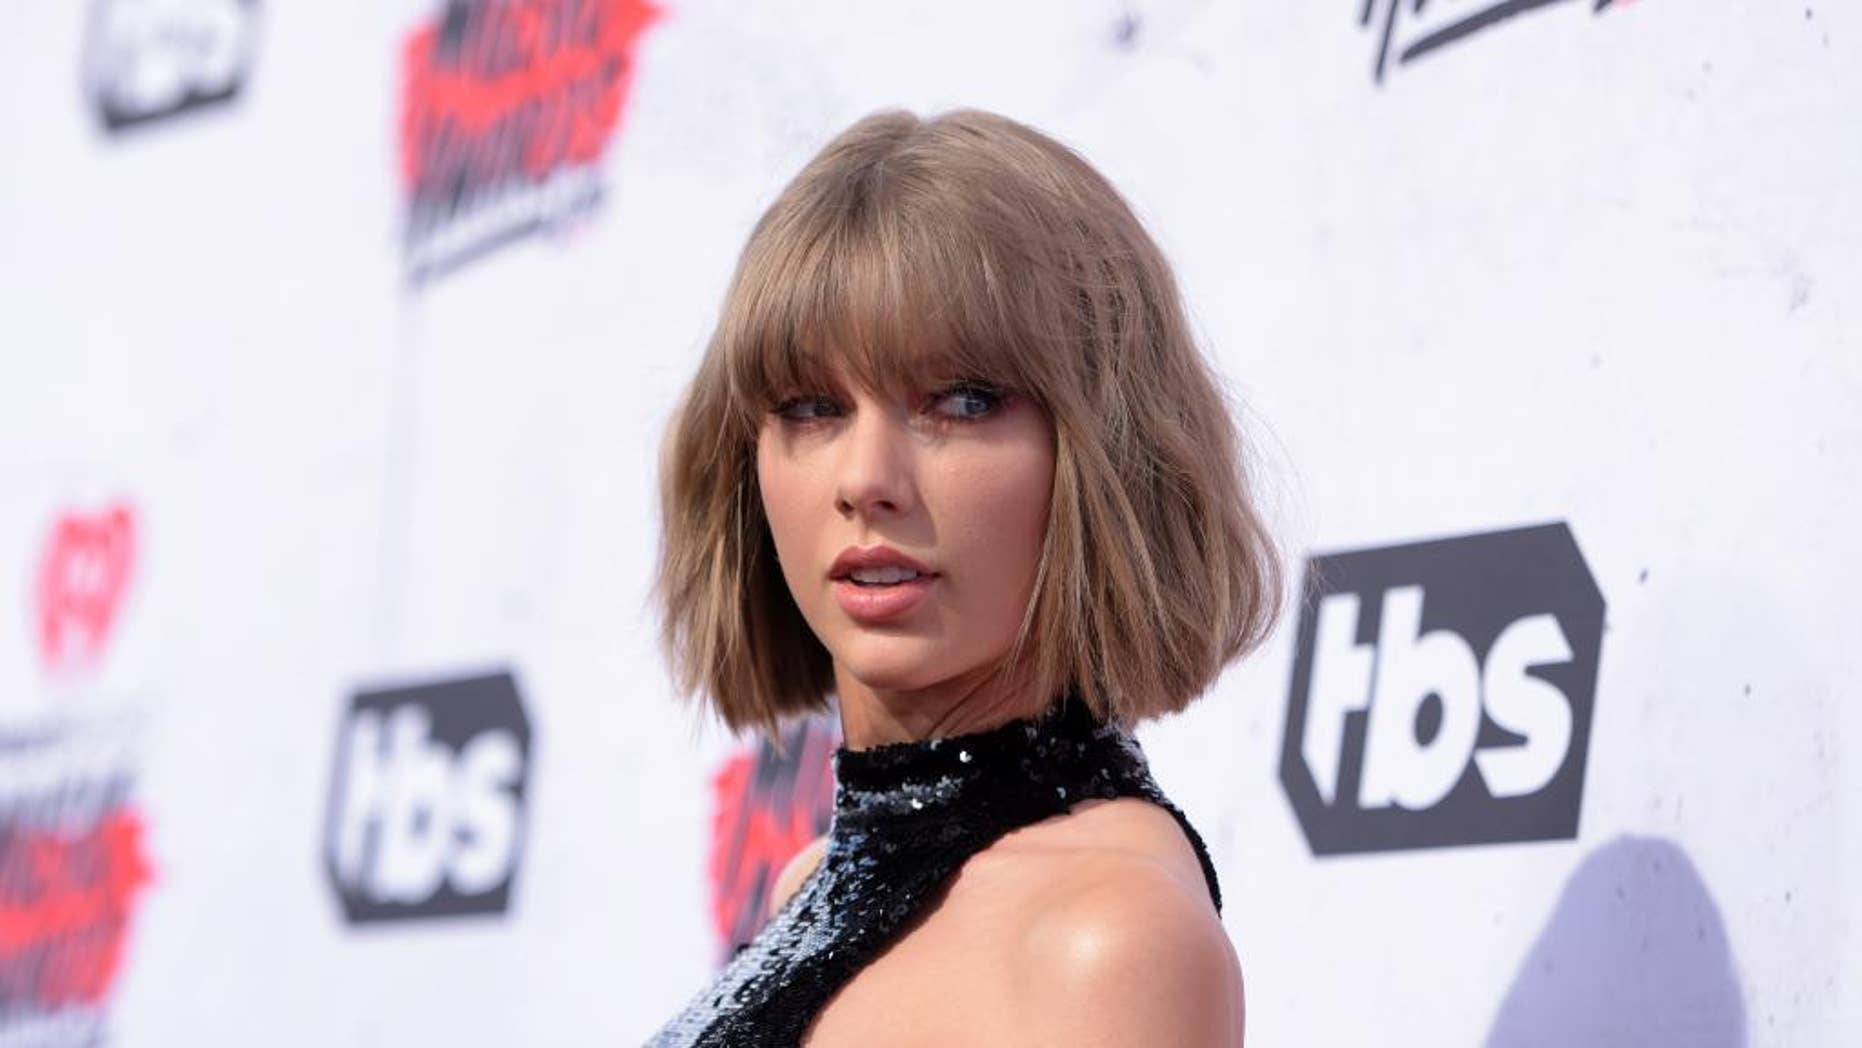 """FILE - In this April 3, 2016 file photo, Taylor Swift arrives at the iHeartRadio Music Awards at The Forum in Inglewood, Calif. Swift is donating $1 million to Louisiana after torrential rains caused massive flooding in the state and killed at least 11 people. Swift told The Associated Press on Tuesday, Aug. 16, 2016, that the community in Louisiana """"made us feel completely at home"""" when she and her touring crew kicked off the U.S. dates of her """"1989 World Tour"""" in the state last year. (Photo by Richard Shotwell/Invision/AP, File)"""